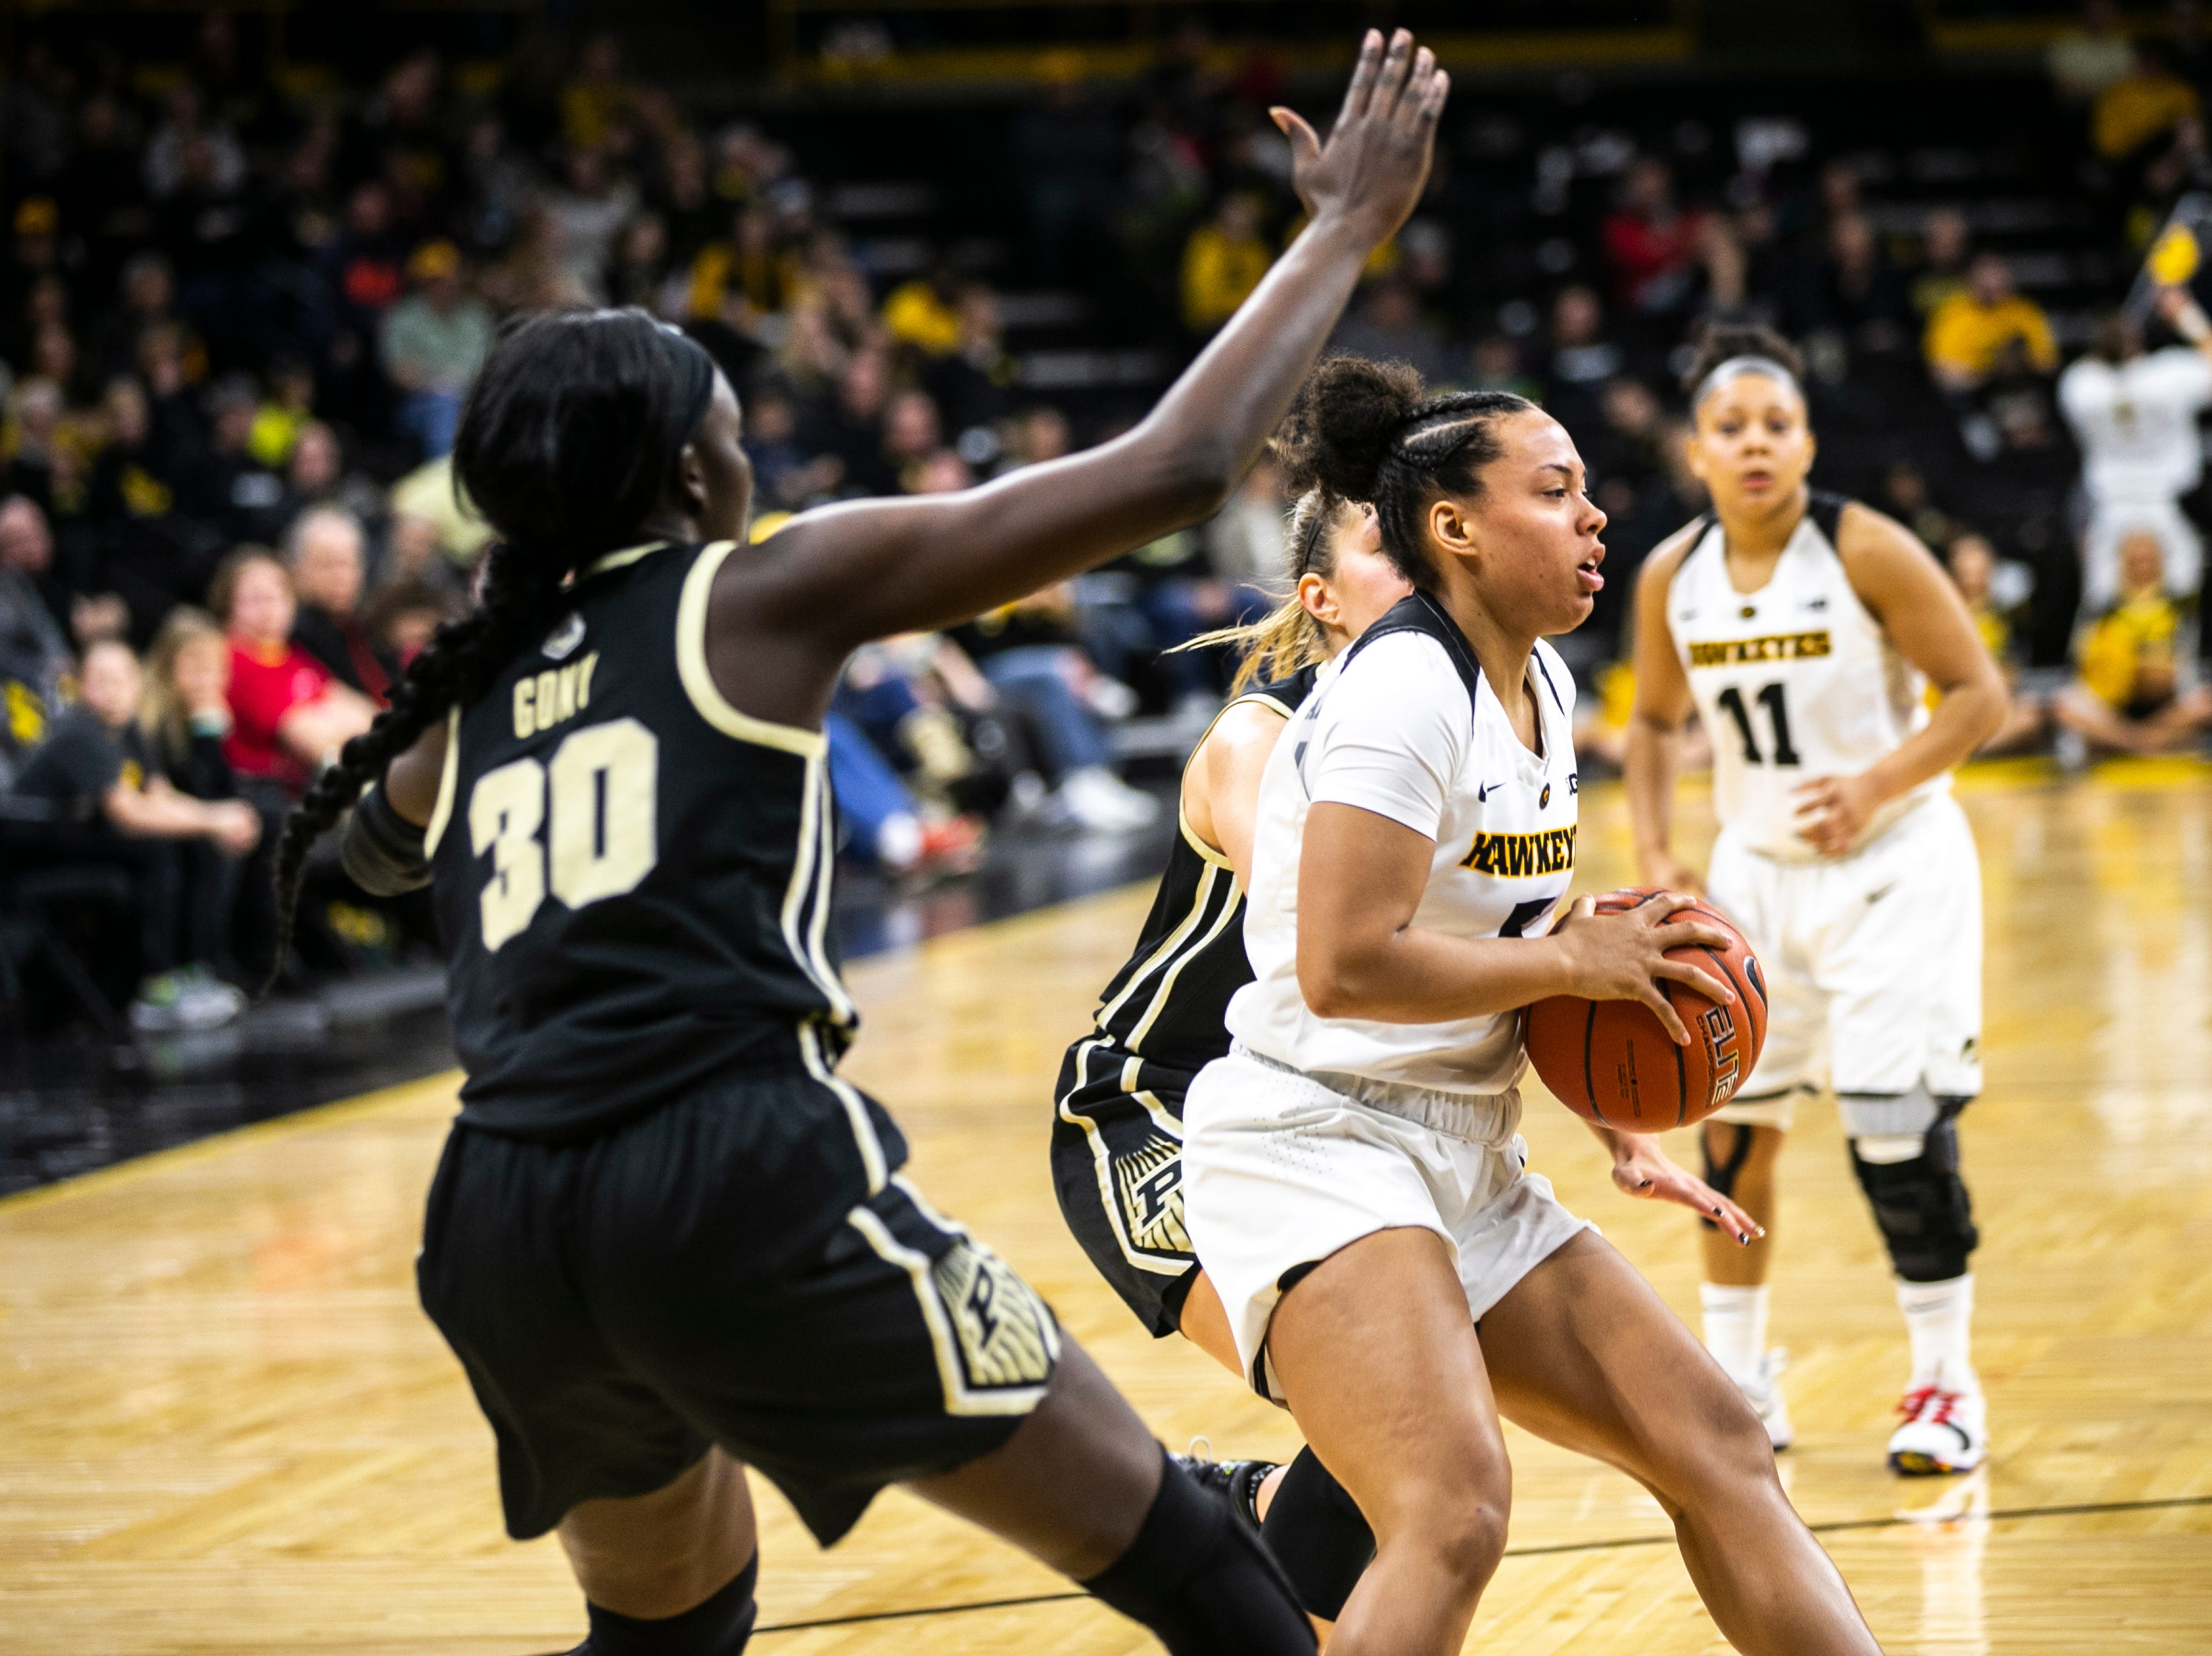 Iowa guard Alexis Sevillian (5) passes out to a teammate while being defended by Purdue forward Nyagoa Gony (30) during a NCAA Big Ten Conference women's basketball game on Sunday, Jan. 27, 2019, at Carver-Hawkeye Arena in Iowa City, Iowa.